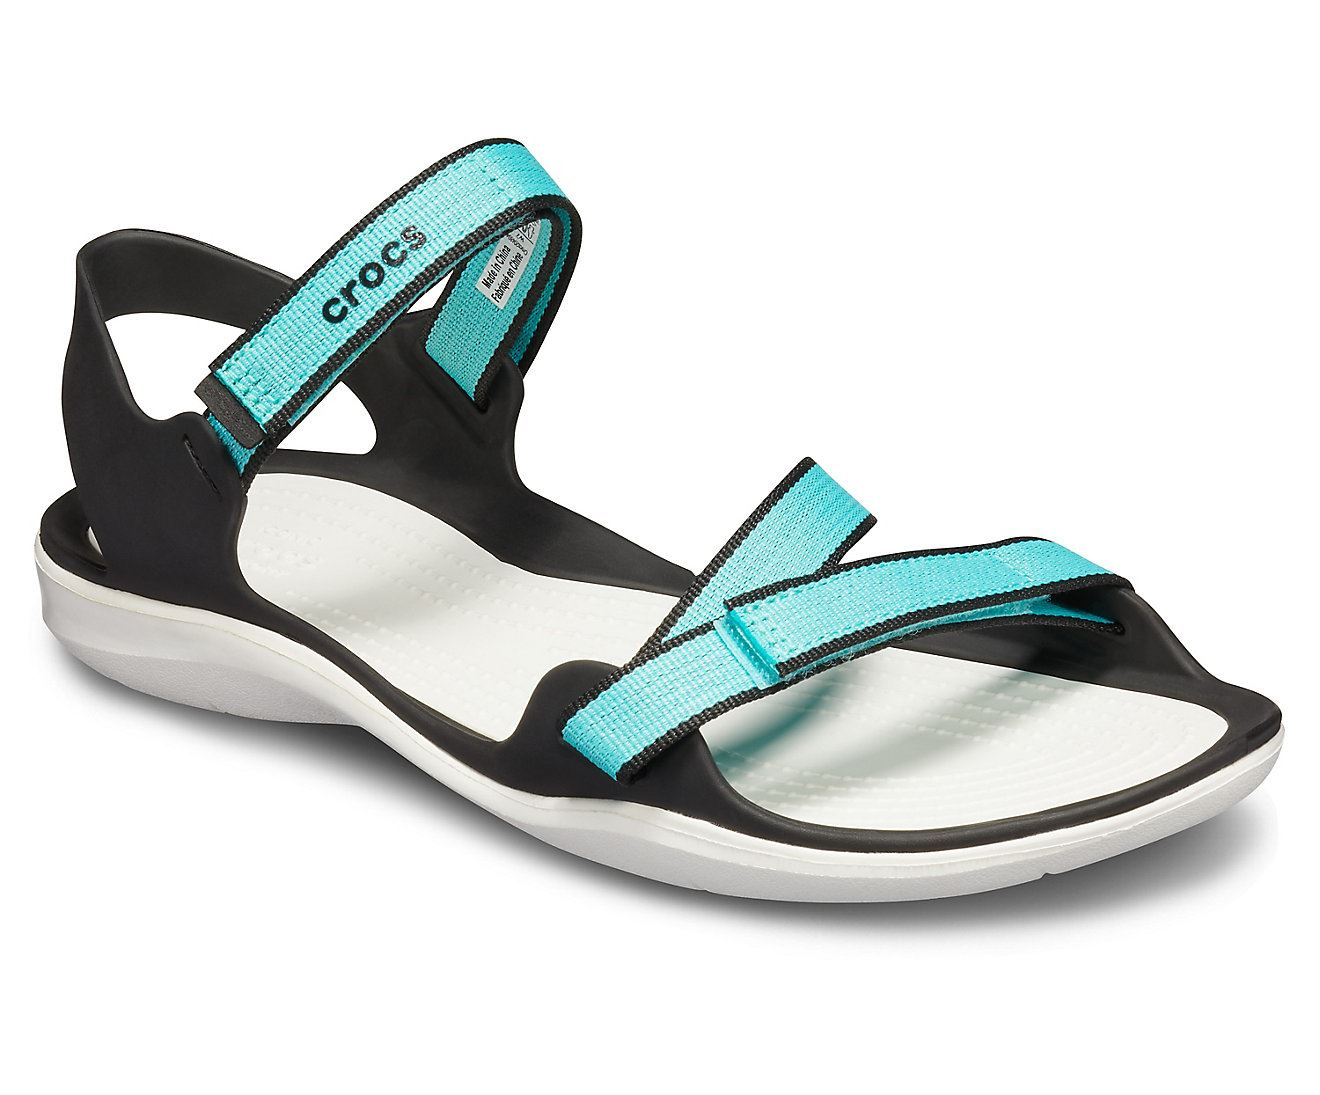 Crocs-Swiftwater-Webbing-Summer-Pool-Beach-Relaxed-Fit-Adjustable-Sandals thumbnail 12